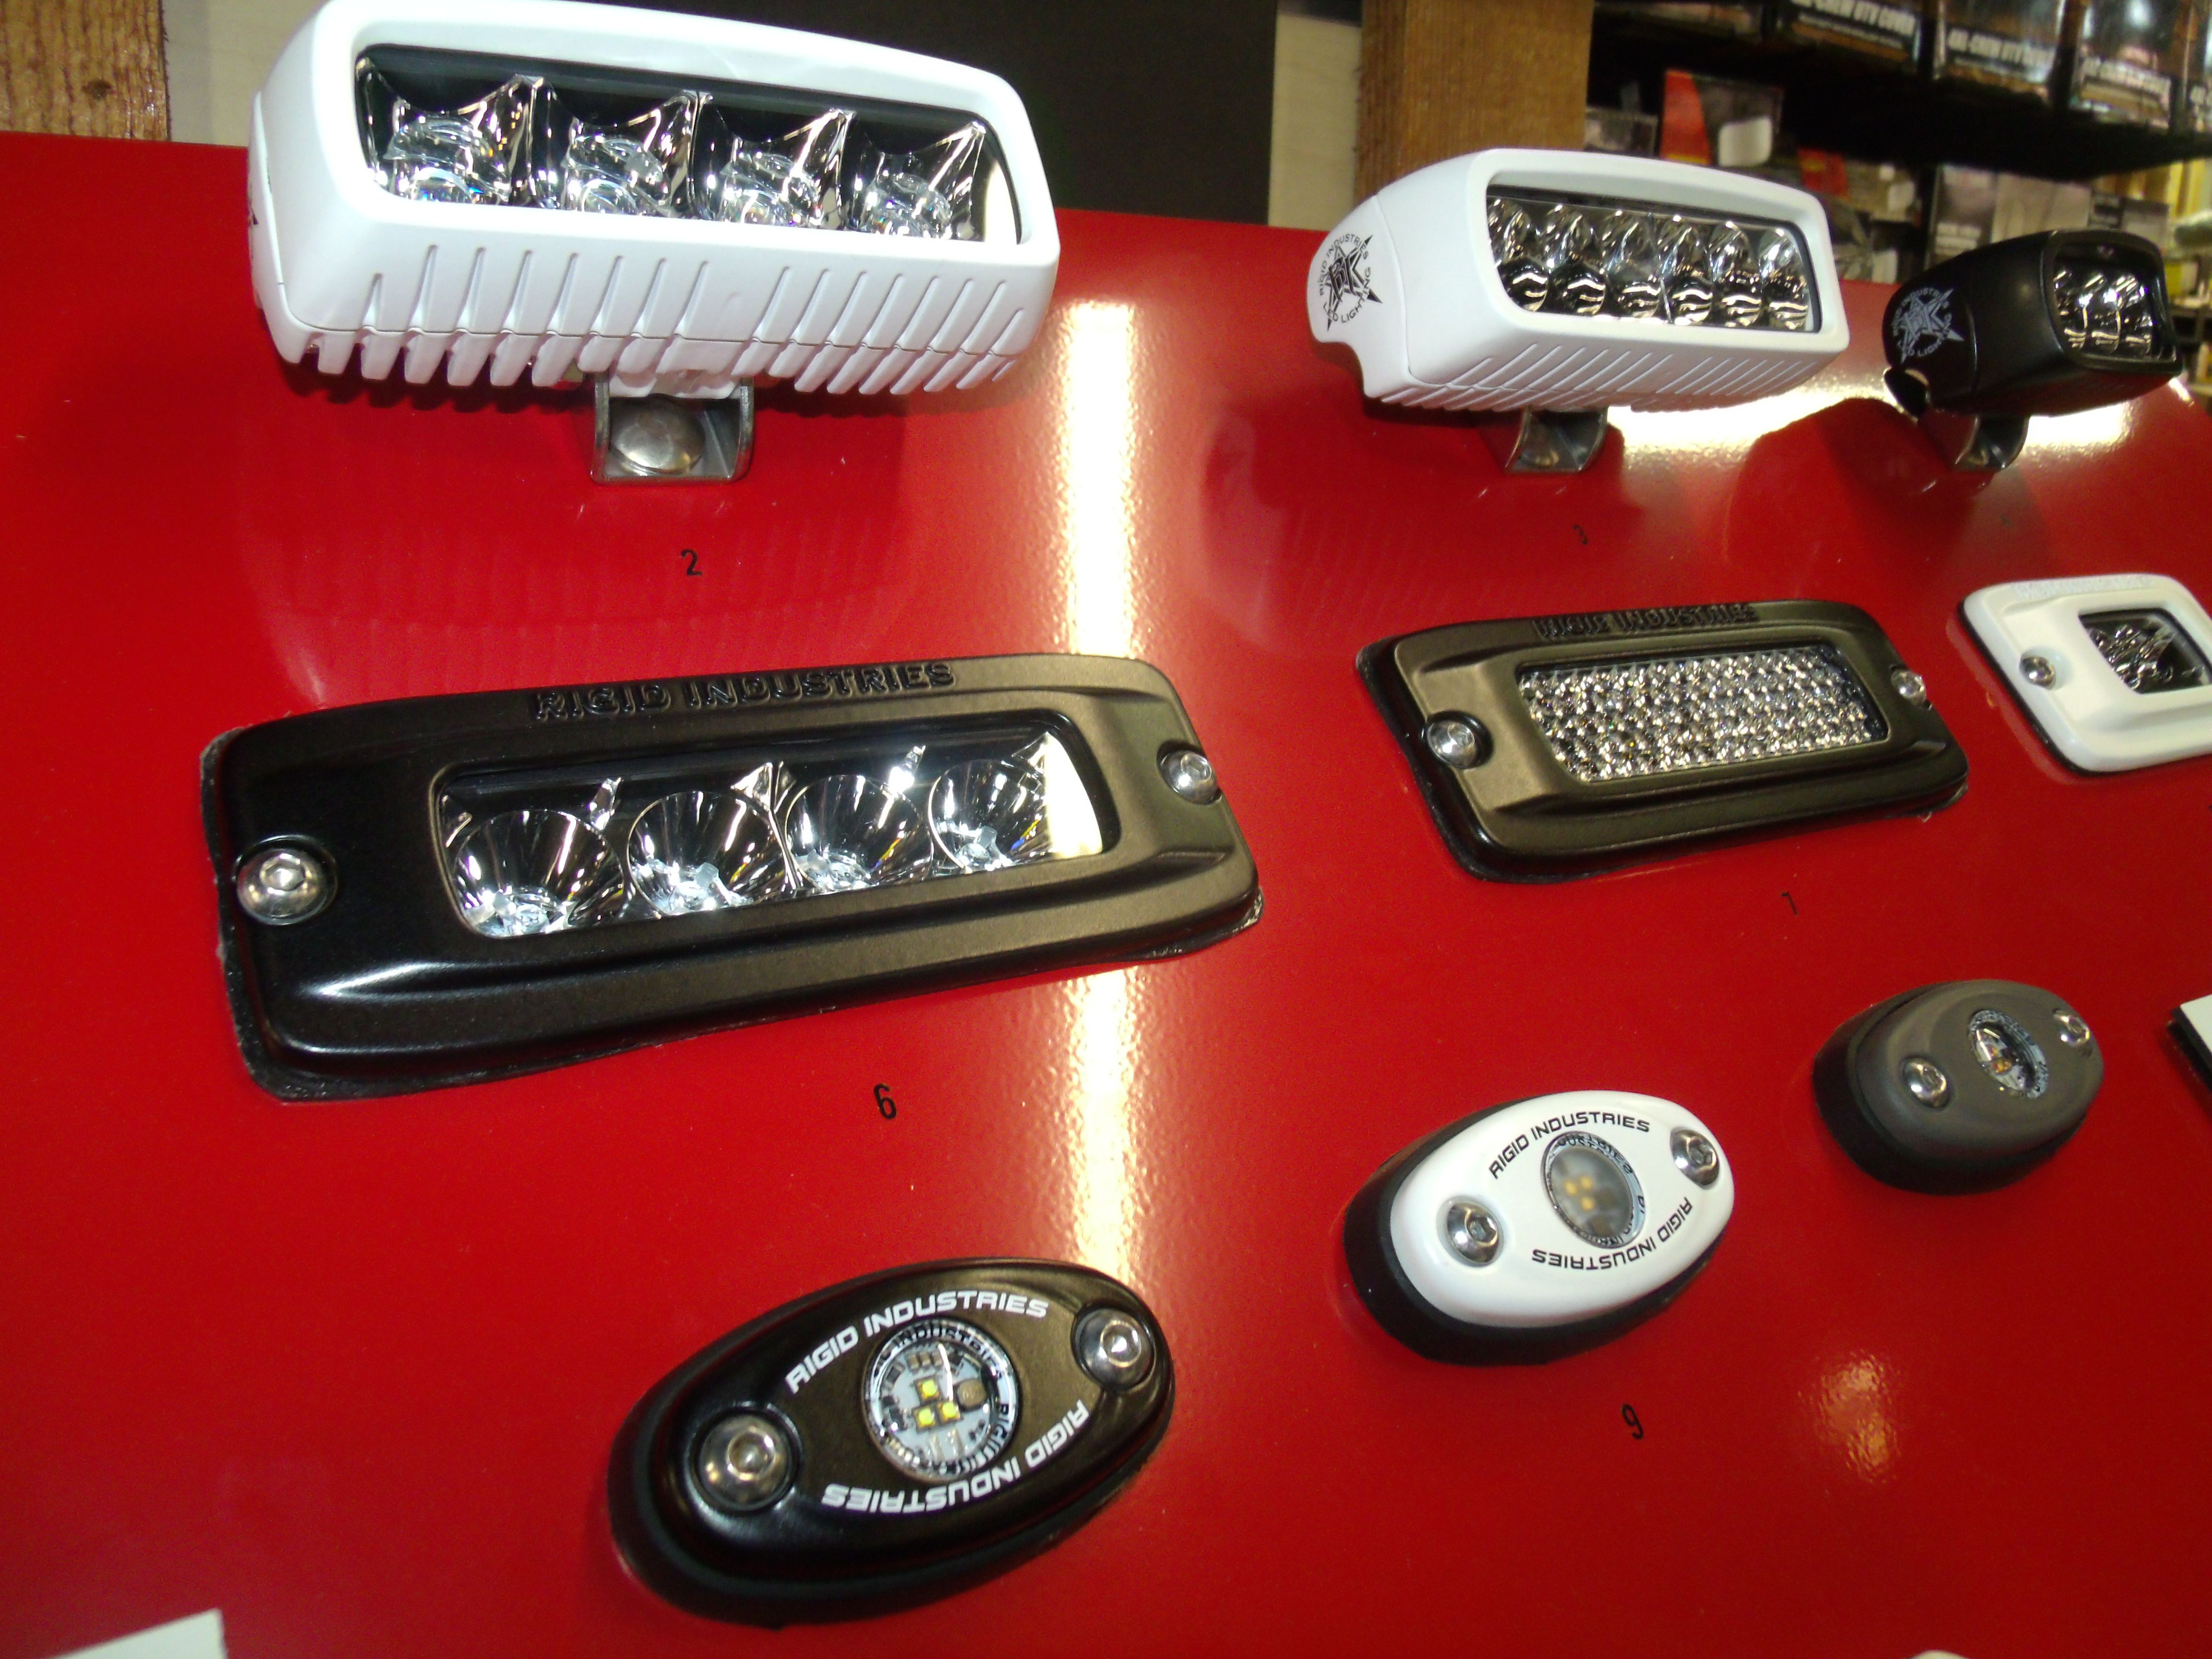 Rigid industries led lighting display at woods cycle country in new braunfels tx